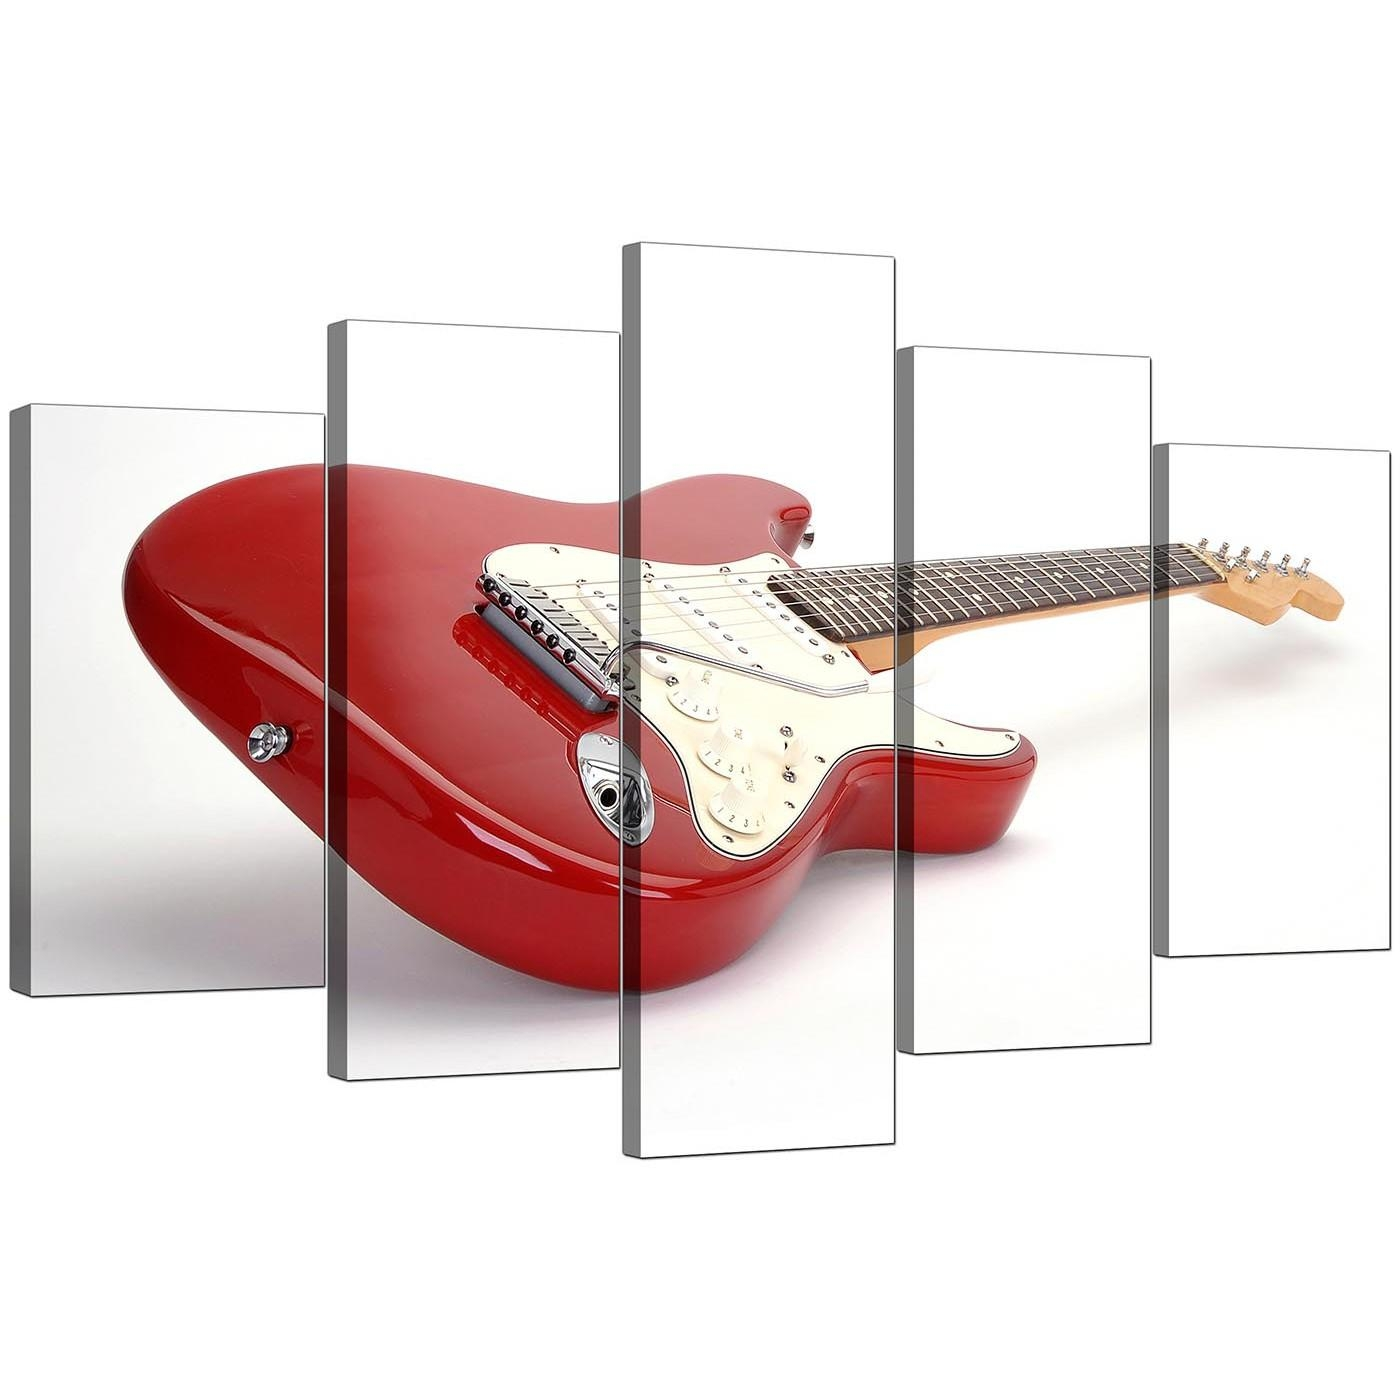 Extra Large Guitar Canvas Wall Art 5 Panel In Red For Guitar Canvas Wall Art (View 16 of 20)